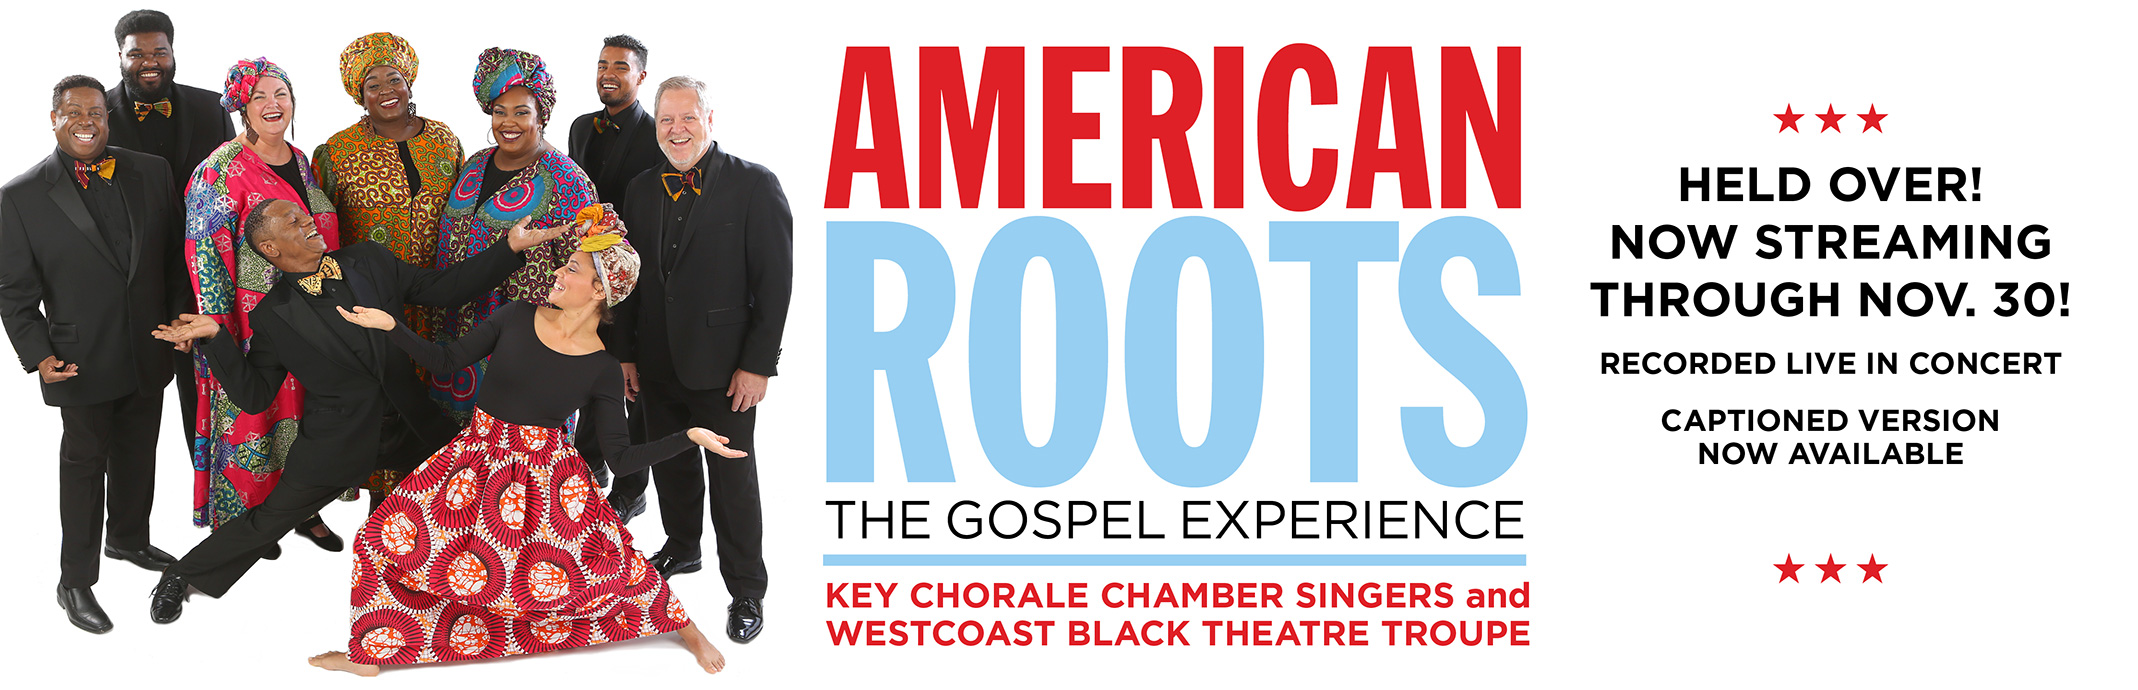 American Roots The Gospel Experience; Encore Presentation Screening through Nov 30